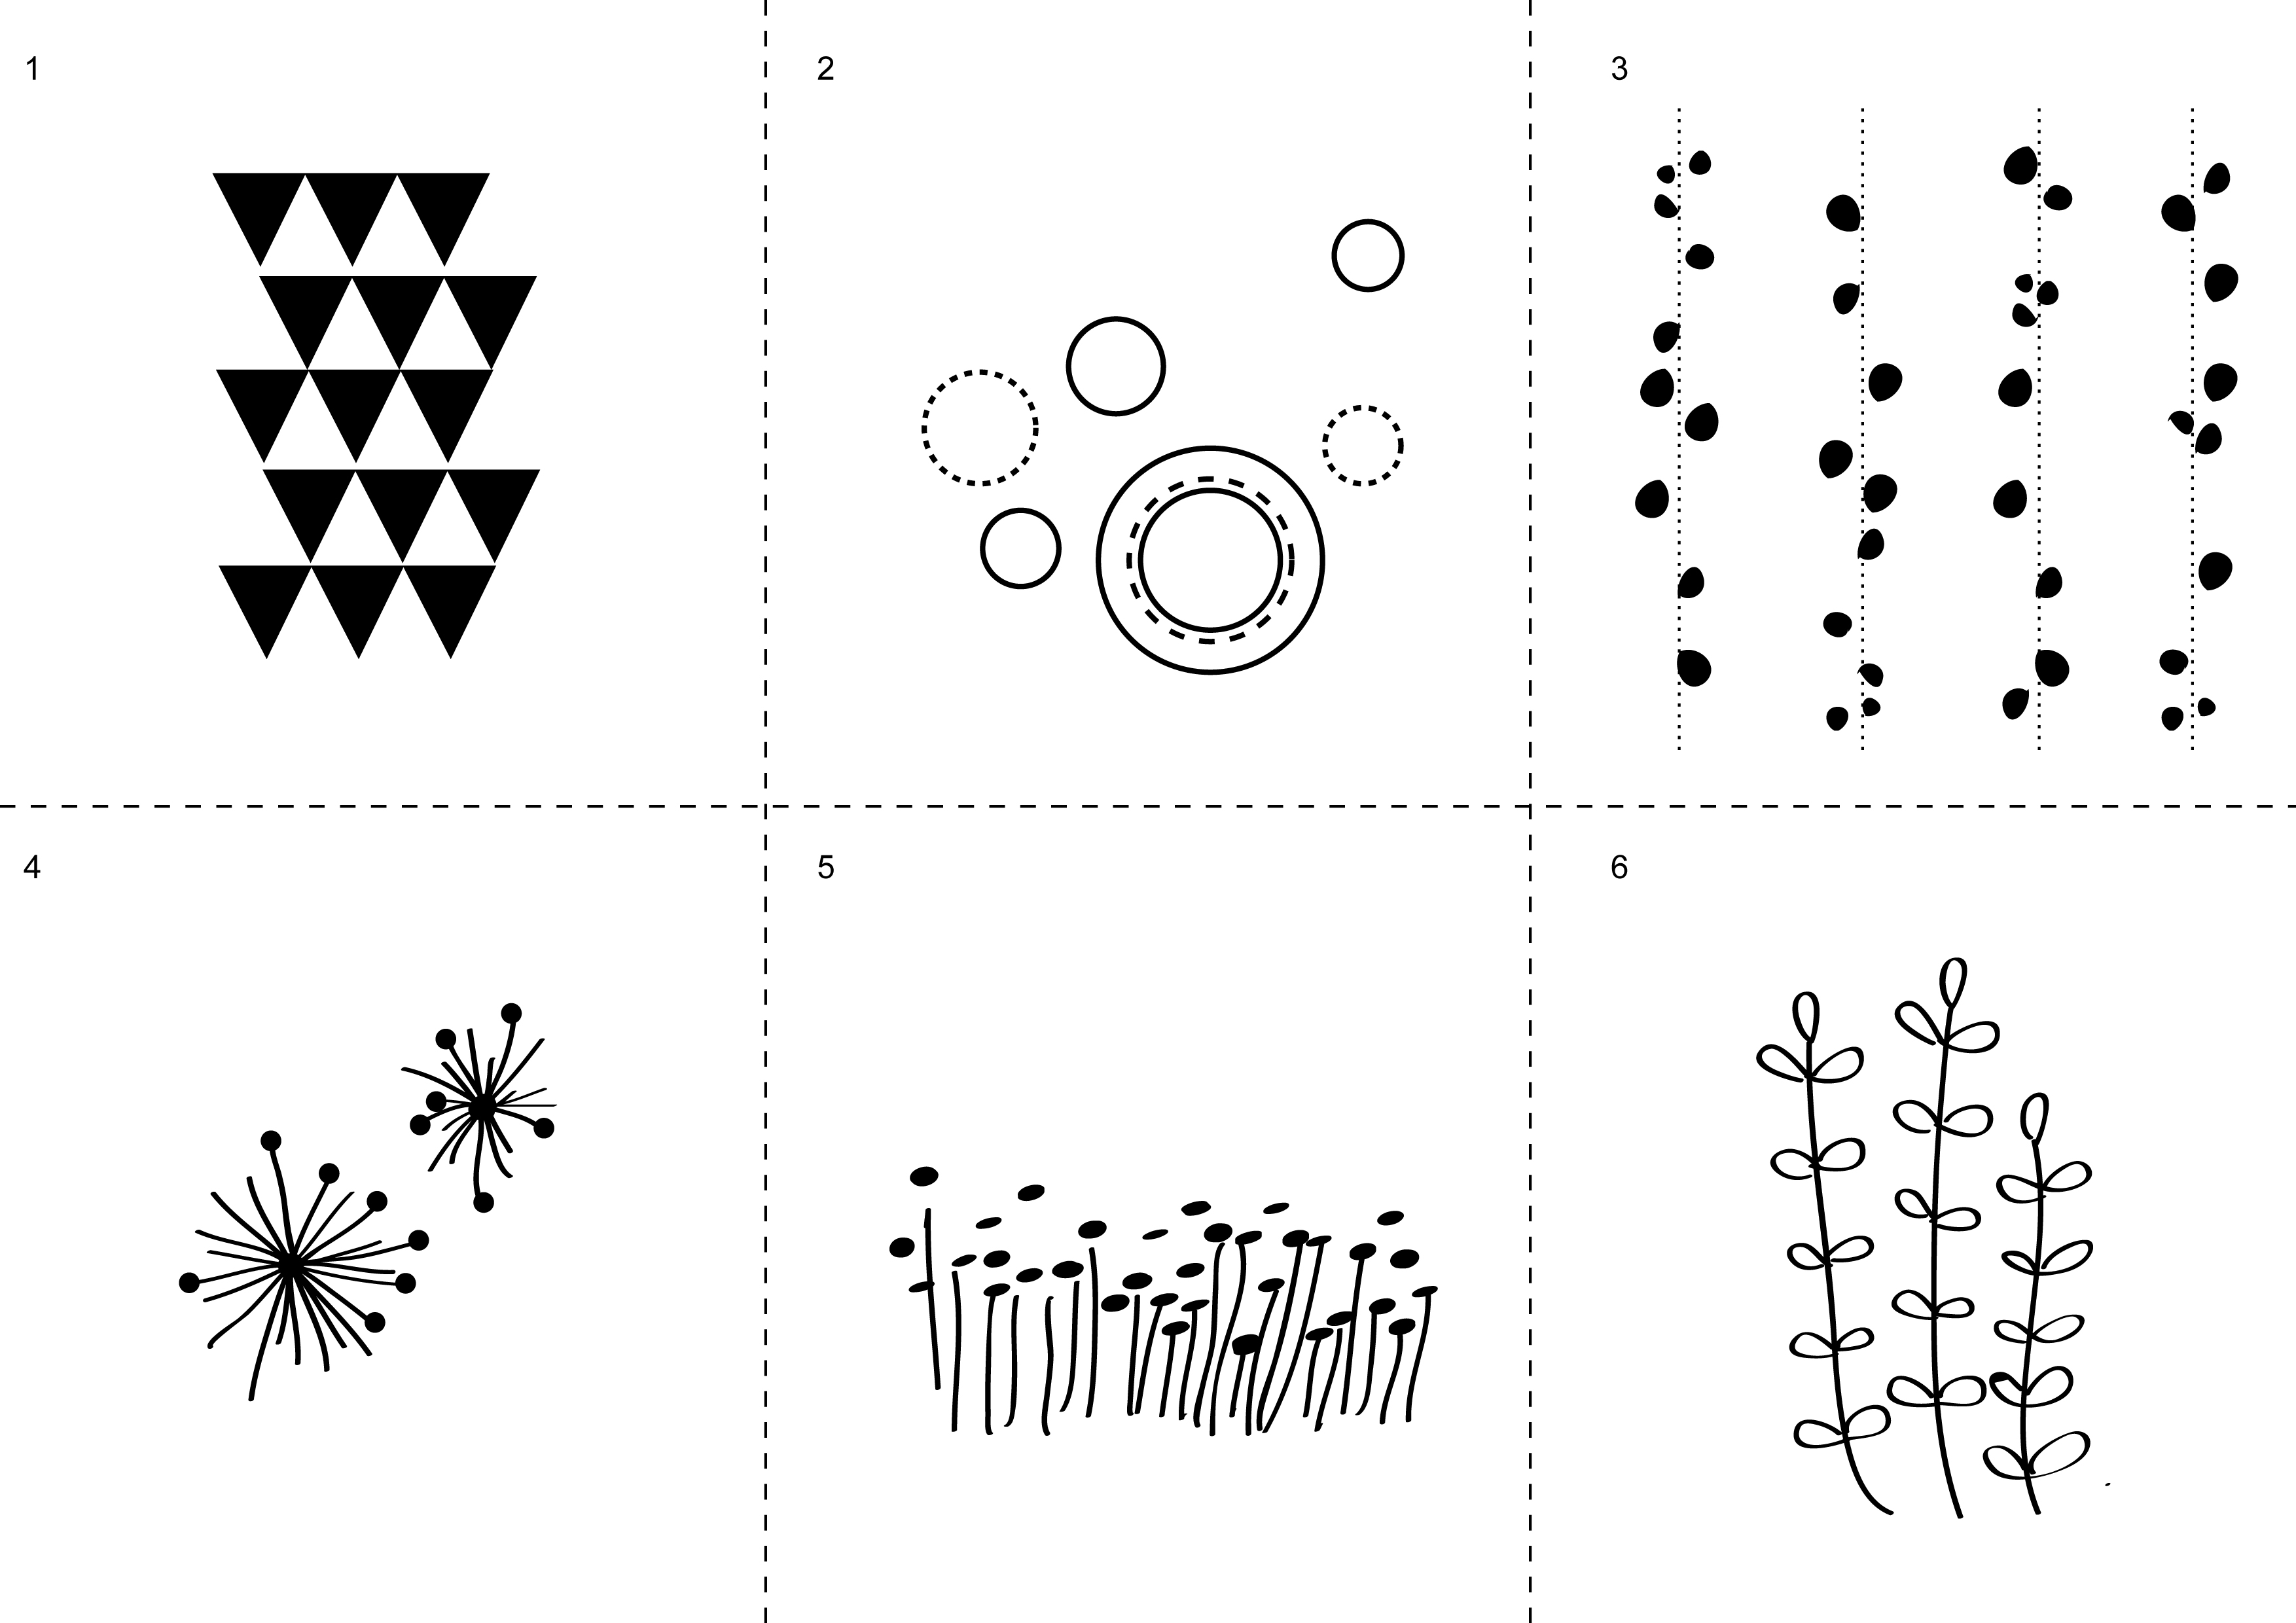 14 cute easy to draw designs on paper images cute and for Cute easy patterns to draw